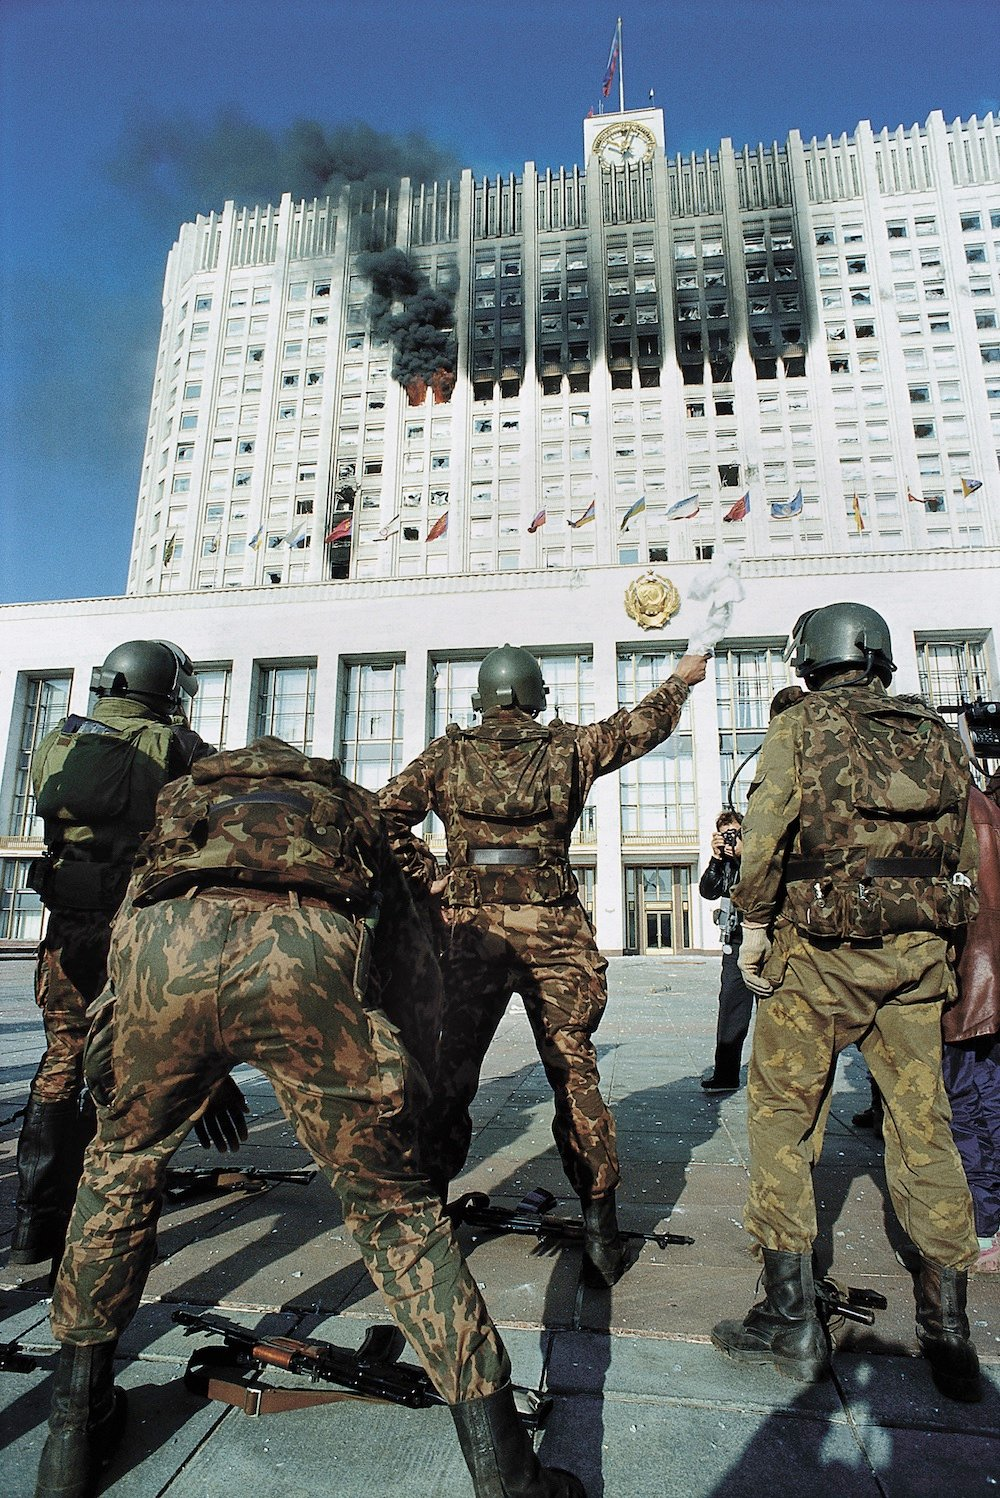 The bombardment of the parliament building in October 1993